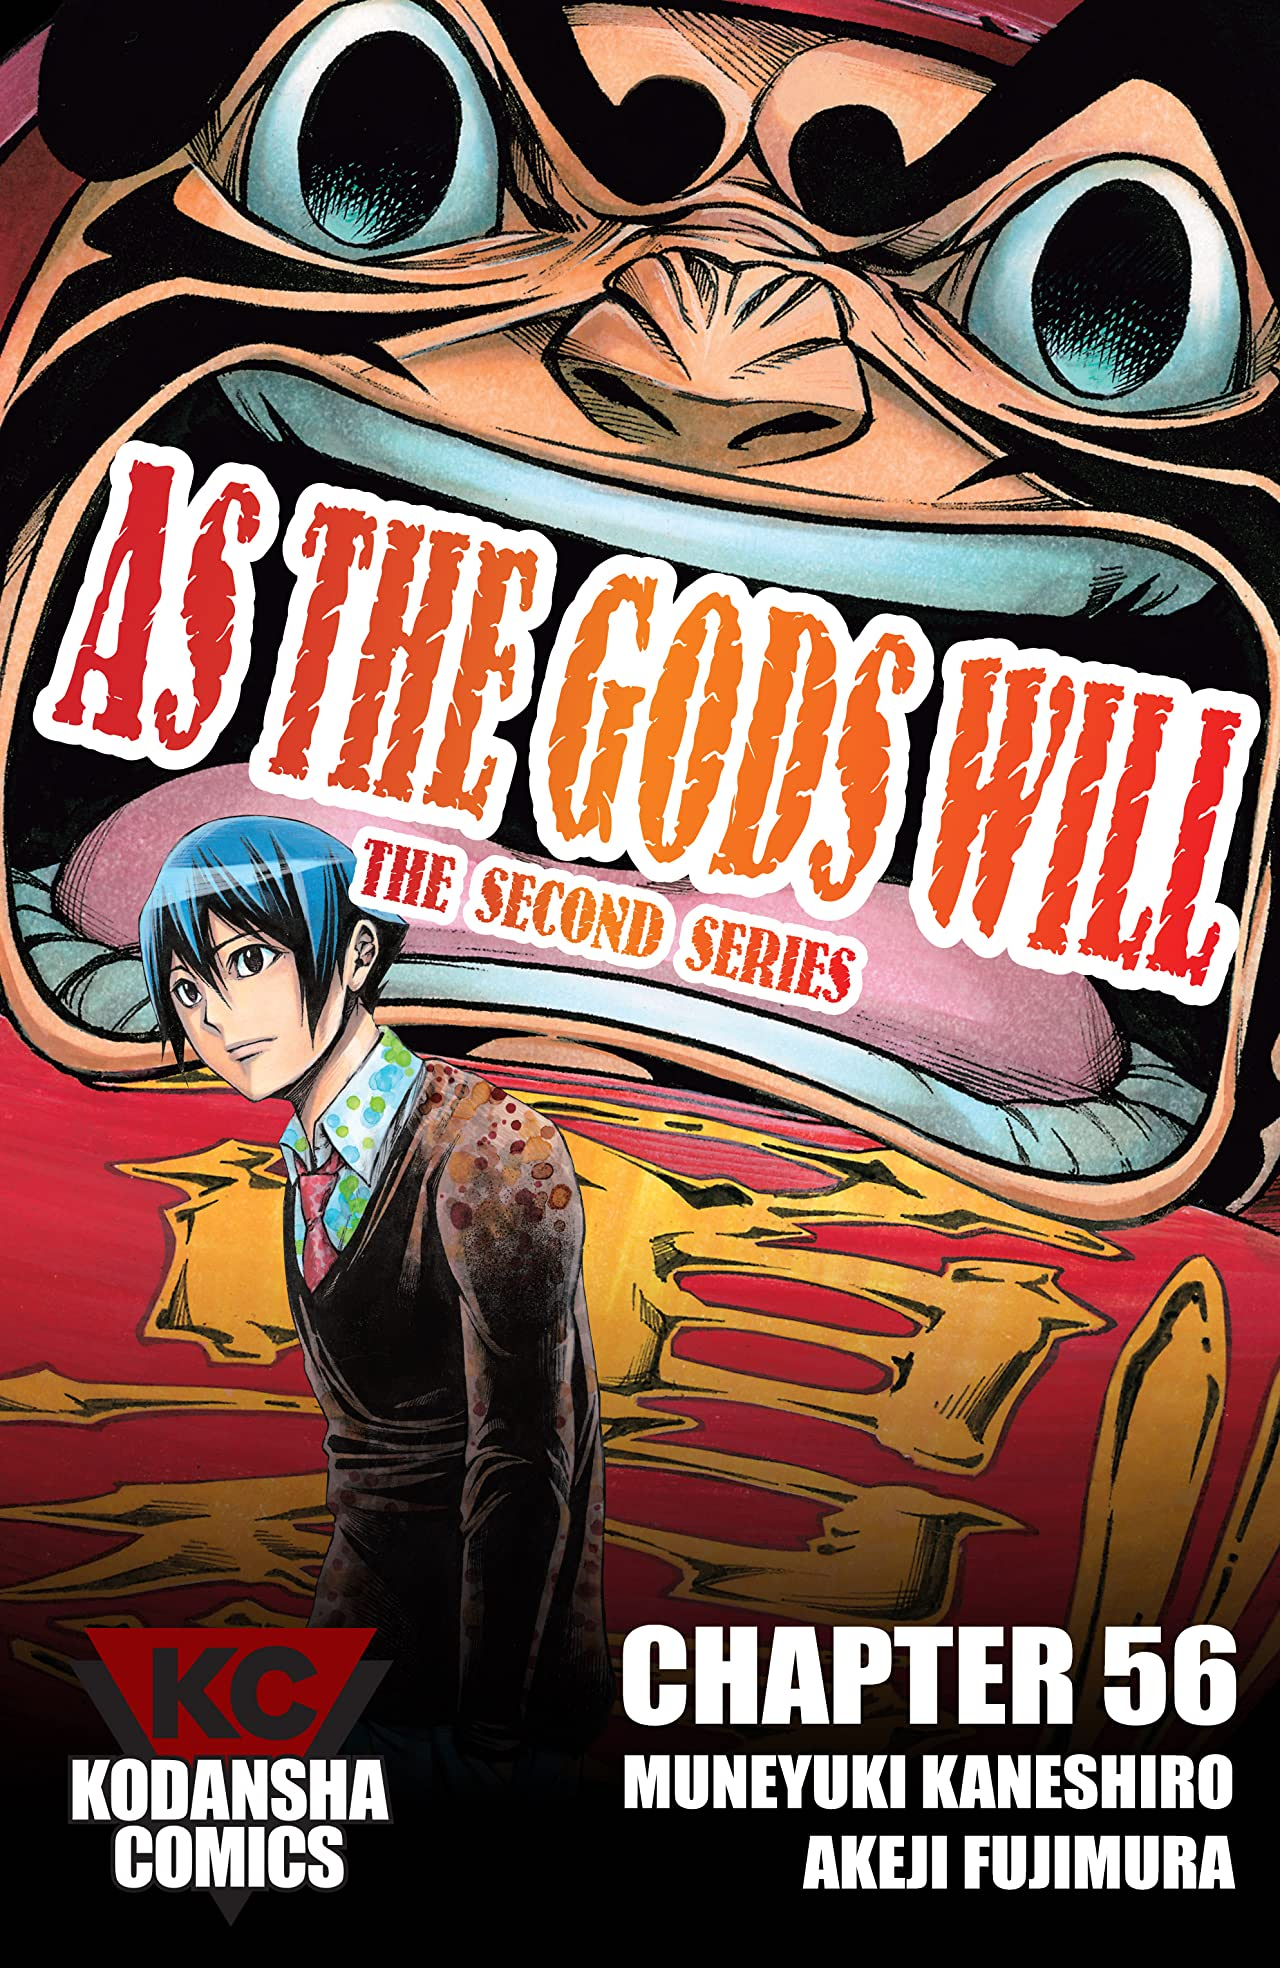 As The Gods Will: The Second Series #56